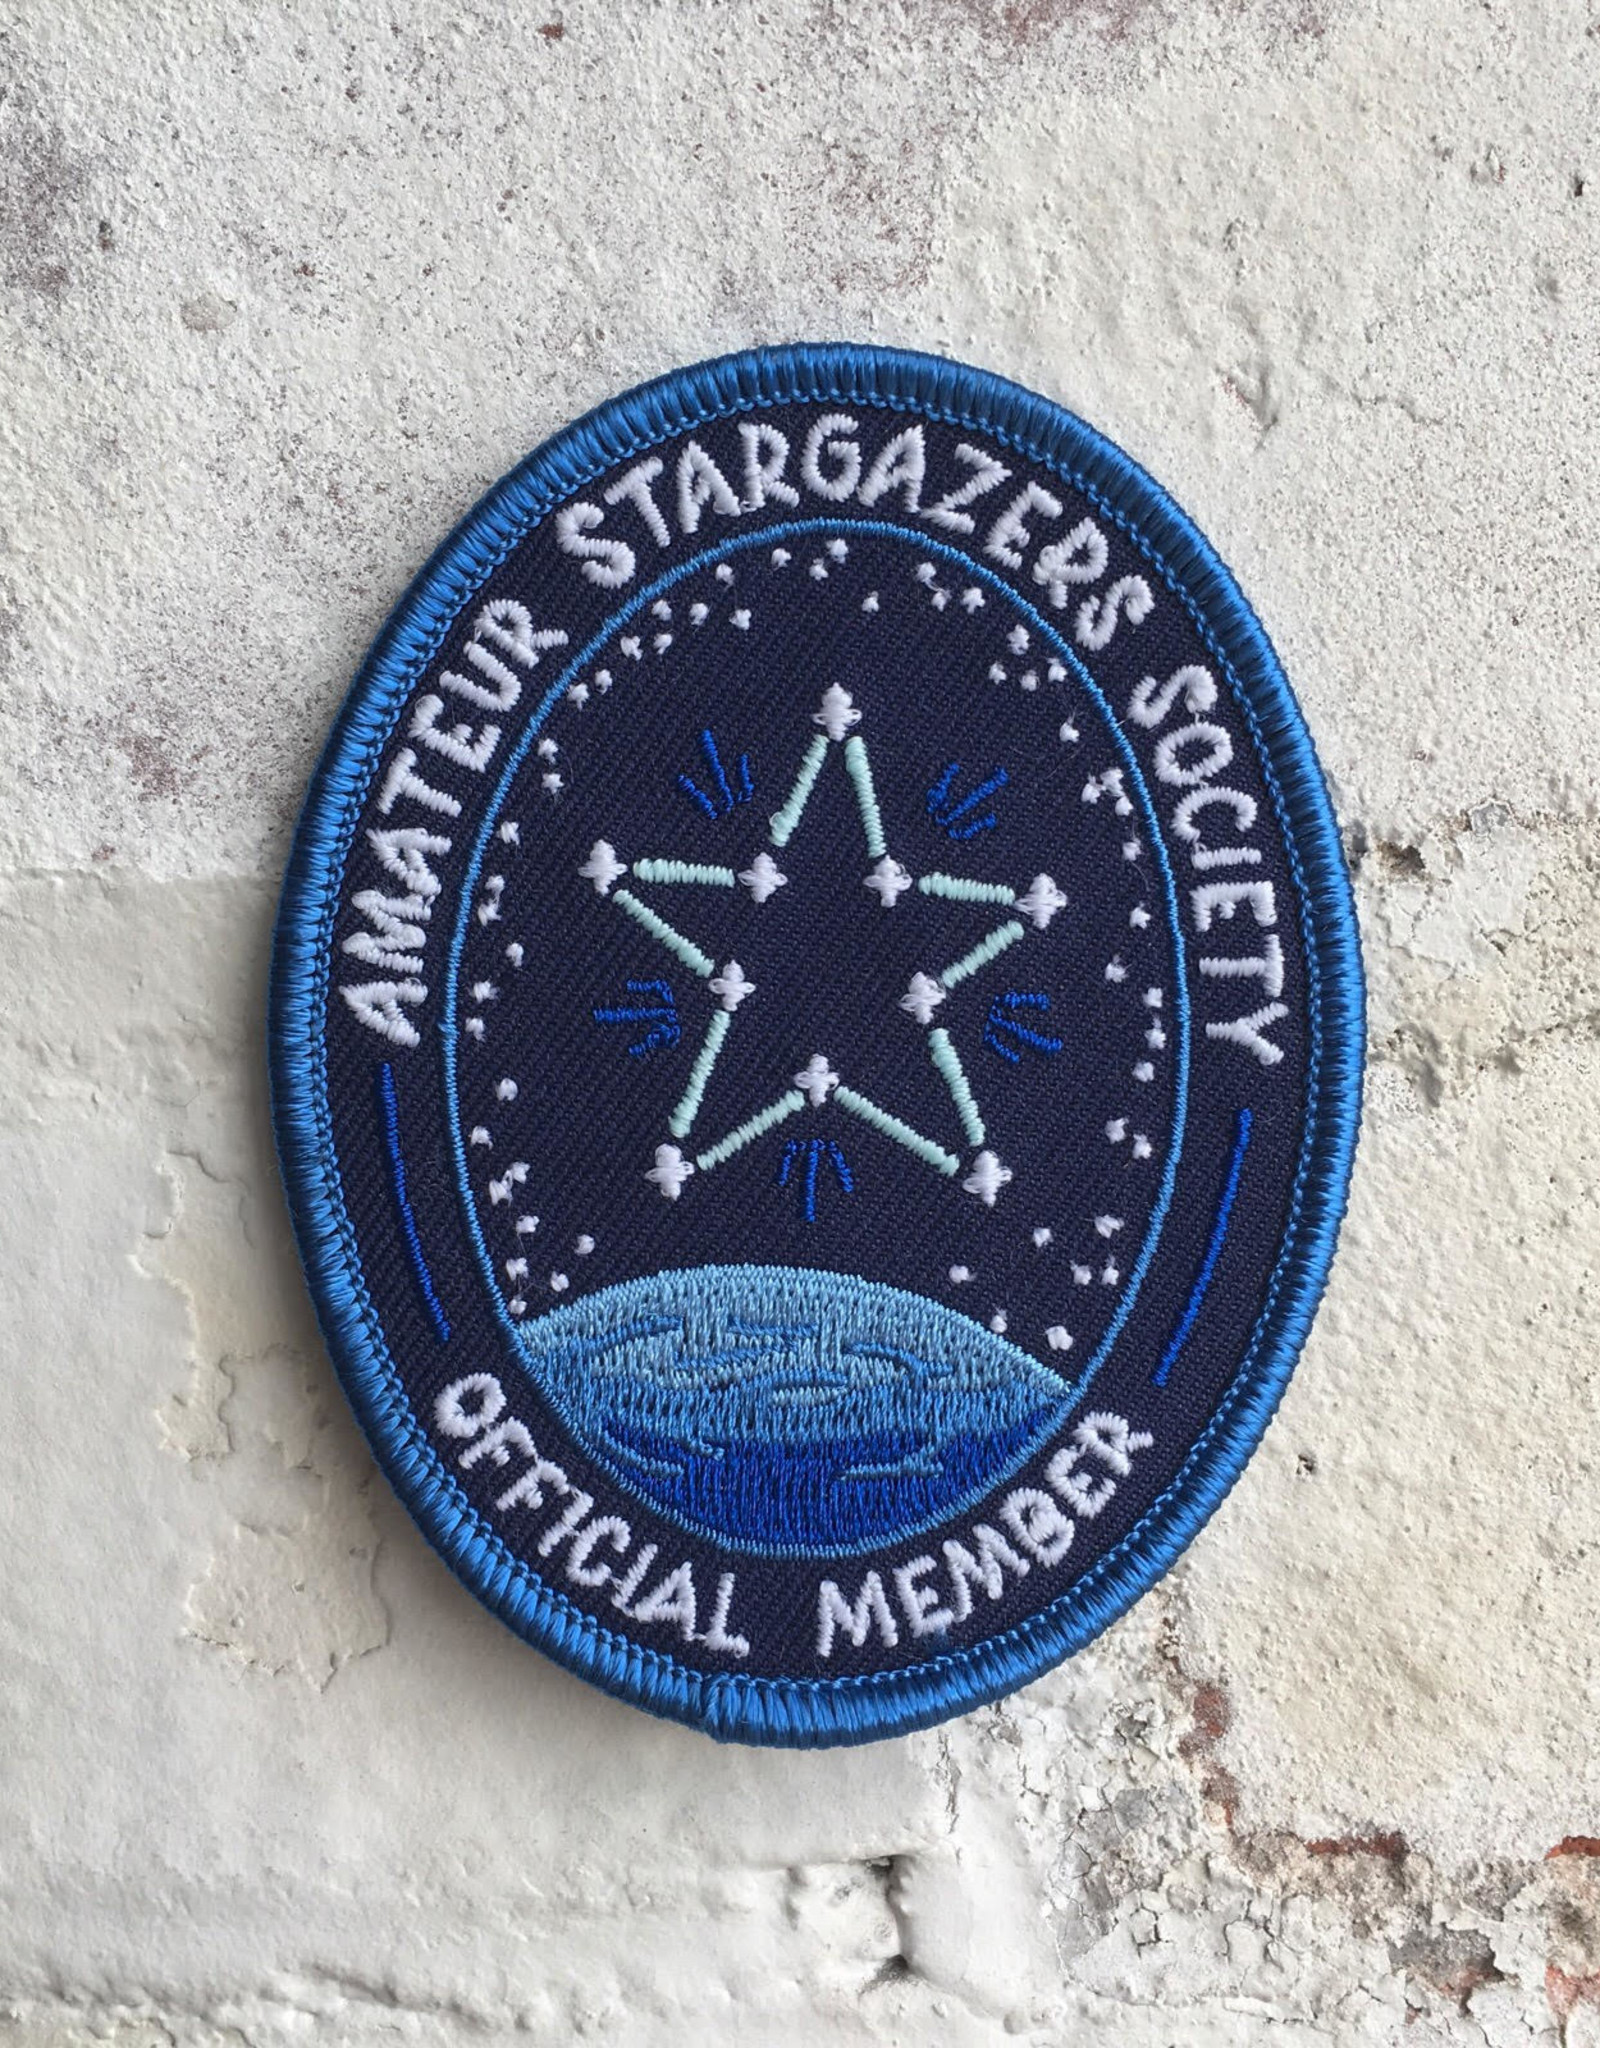 Frog & Toad Press Amateur Stargazers Society Patch